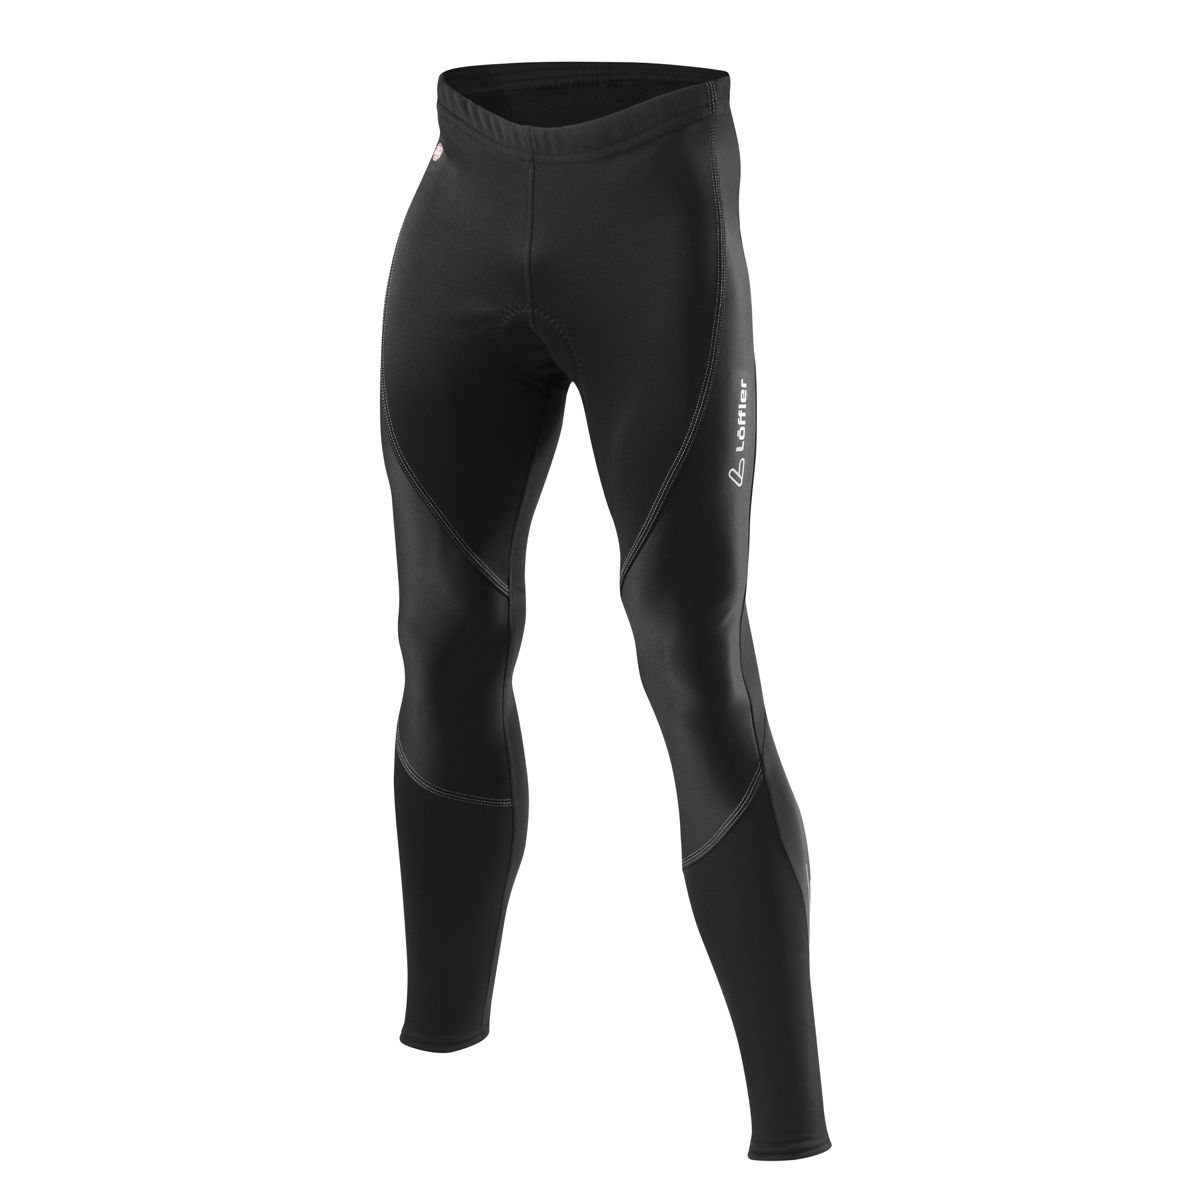 BIKE PANTS LONG WS SOFTSHELL WARM (MS)